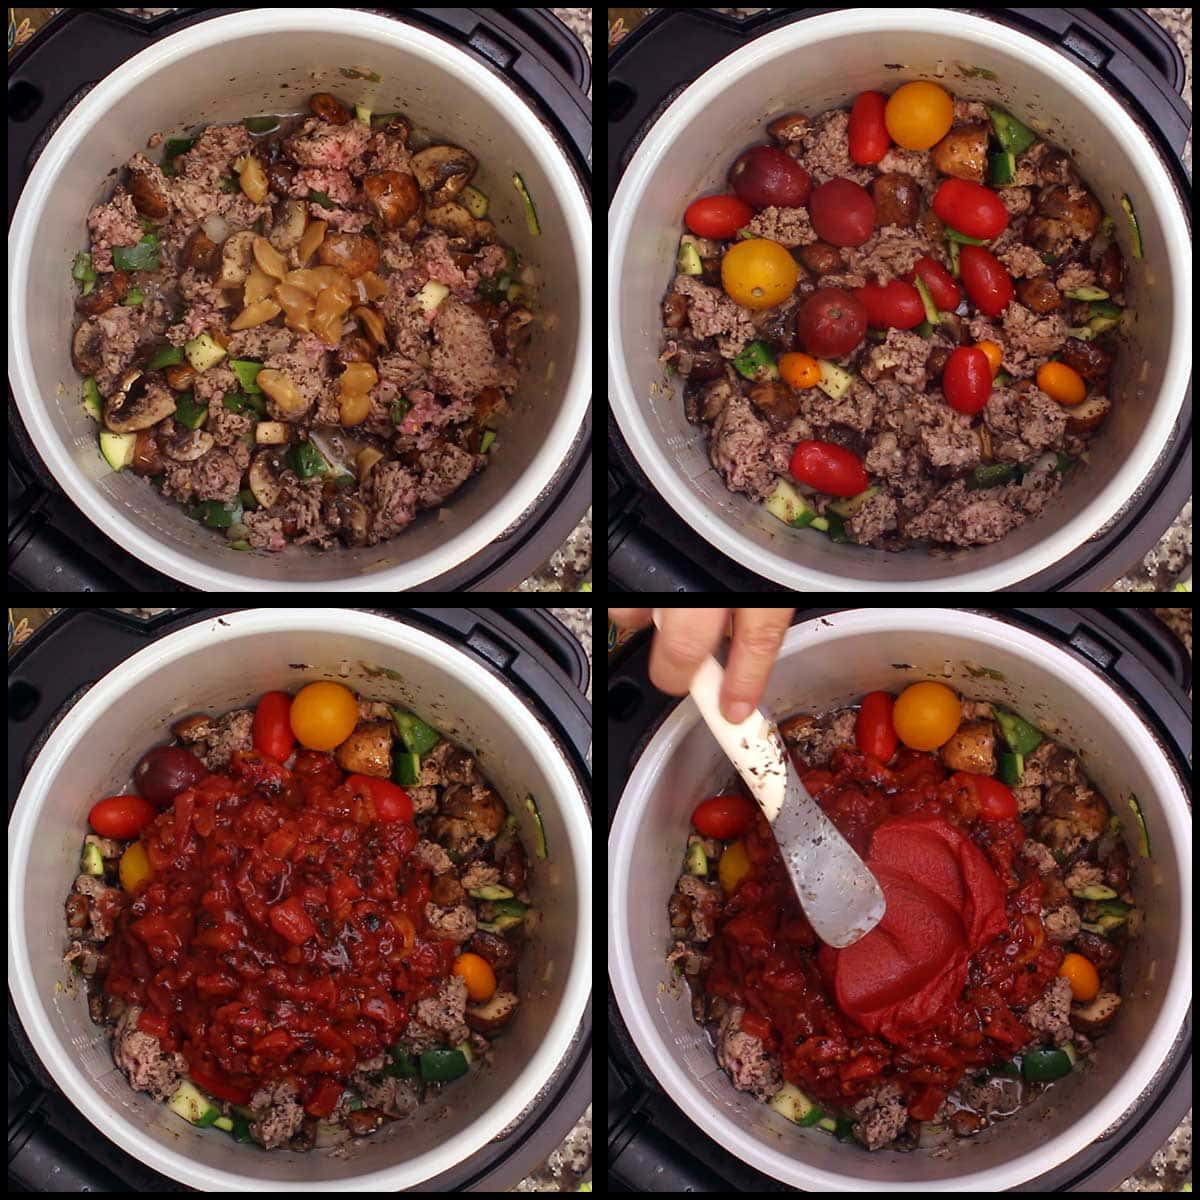 adding the remaining ingredients for the healthy spaghetti sauce